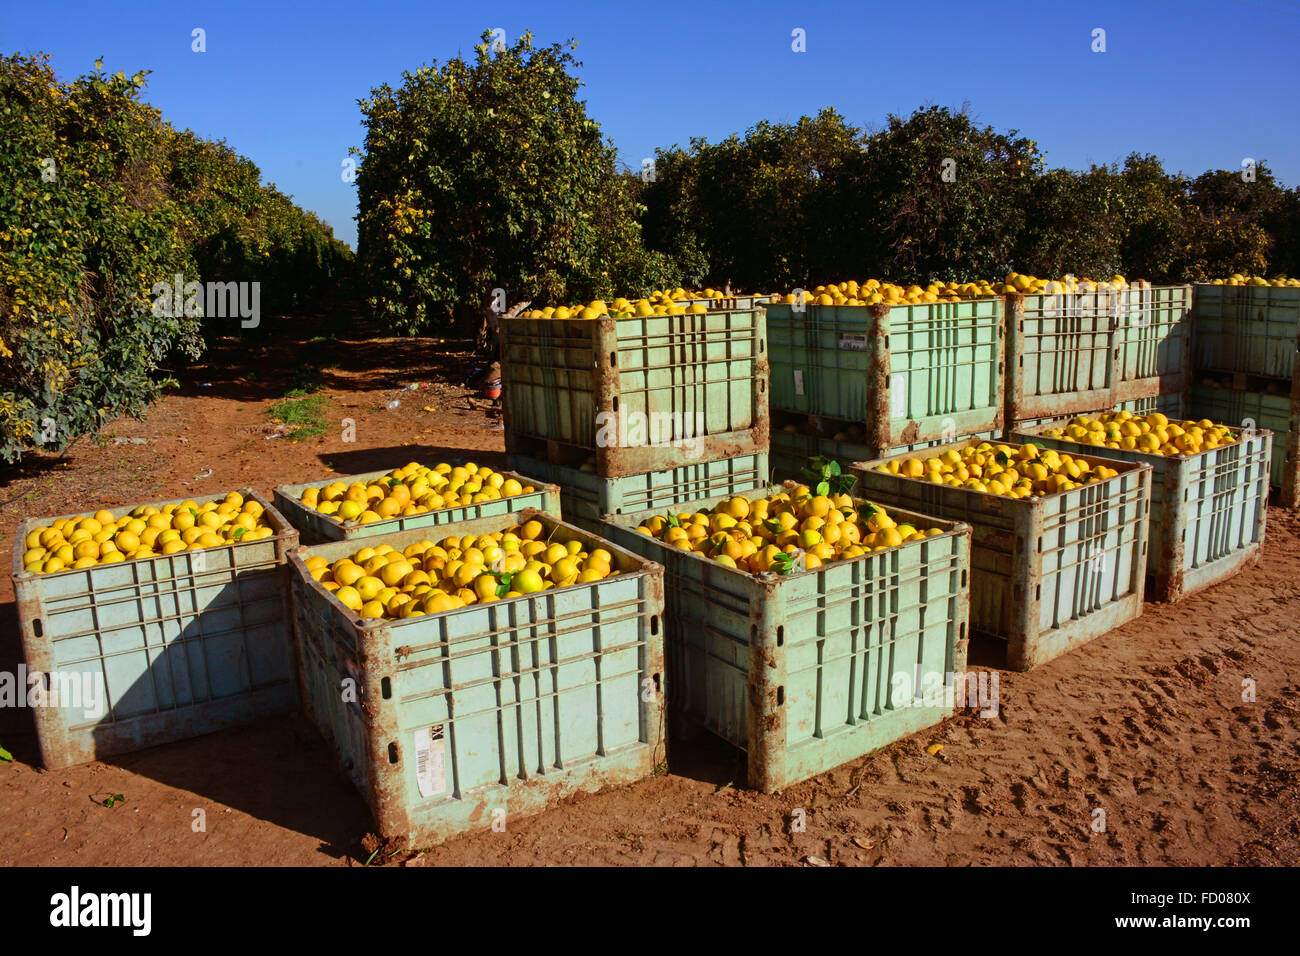 Grapefruit containers, Fresh from the orchard - Stock Image